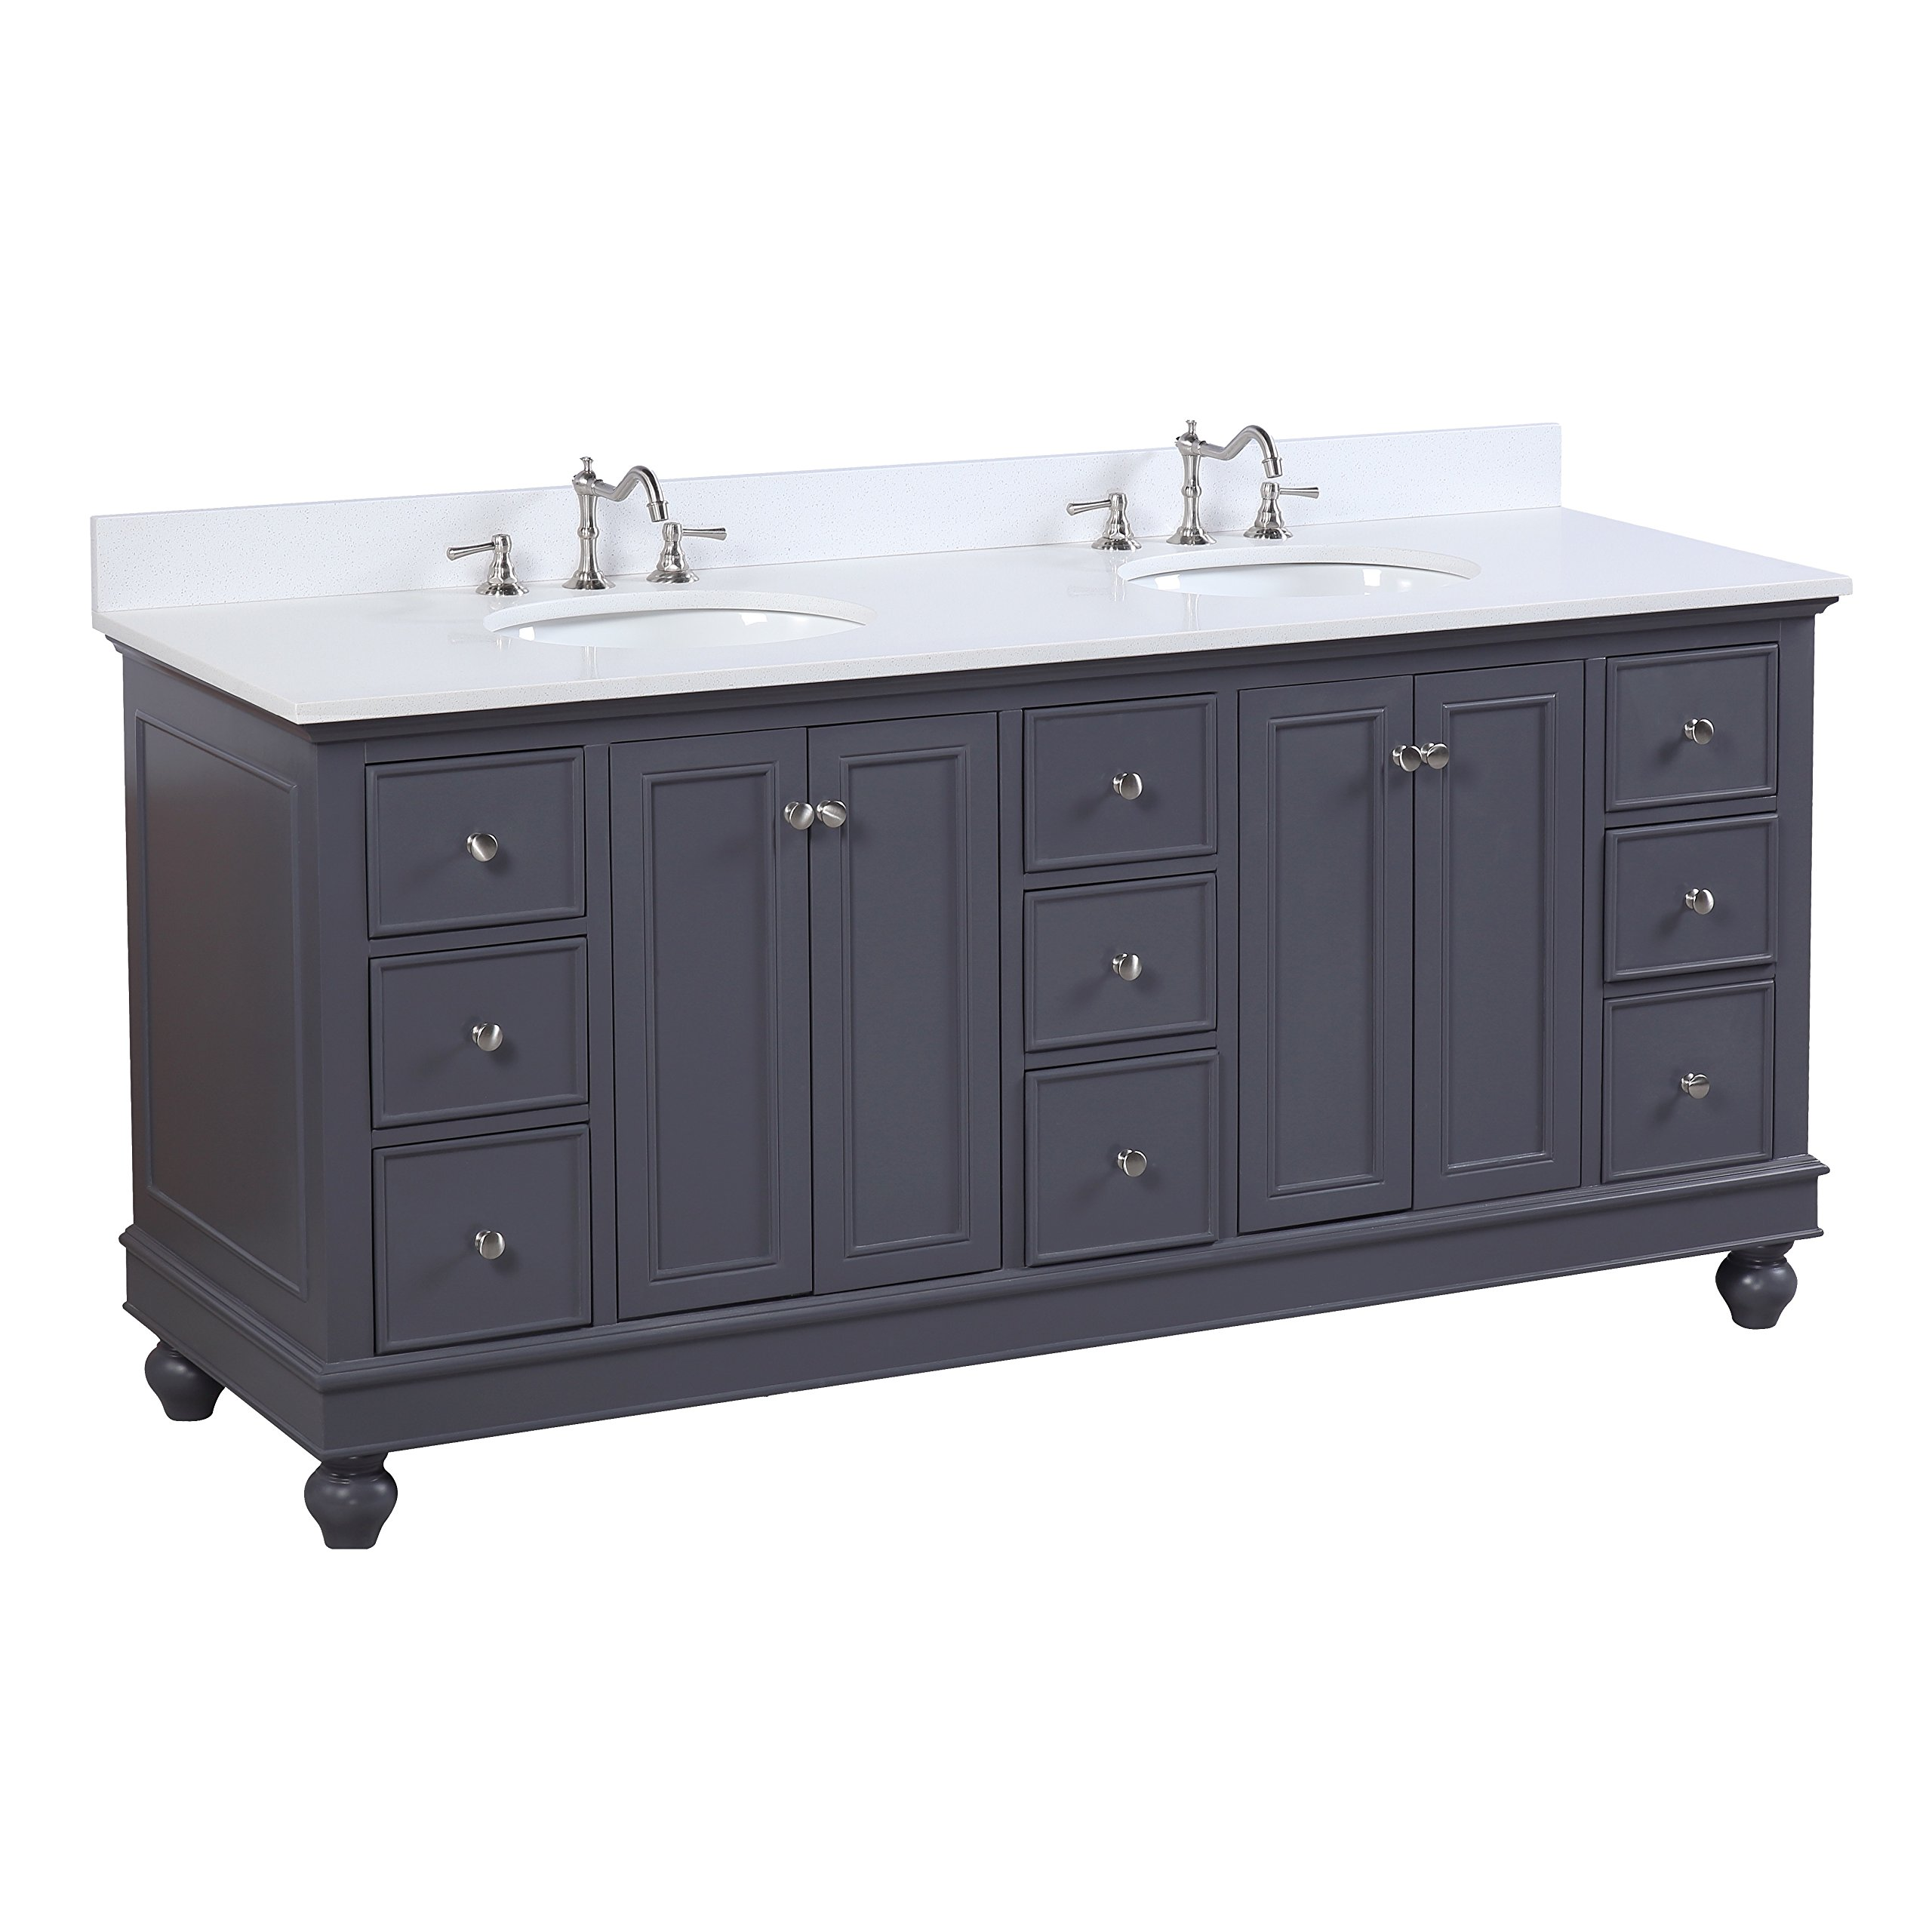 Bella 72-inch Double Bathroom Vanity (Quartz/Charcoal Gray): Includes a Charcoal Gray Cabinet, Quartz Countertop, Soft Close Drawers and Doors, and Ceramic Sinks by Kitchen Bath Collection